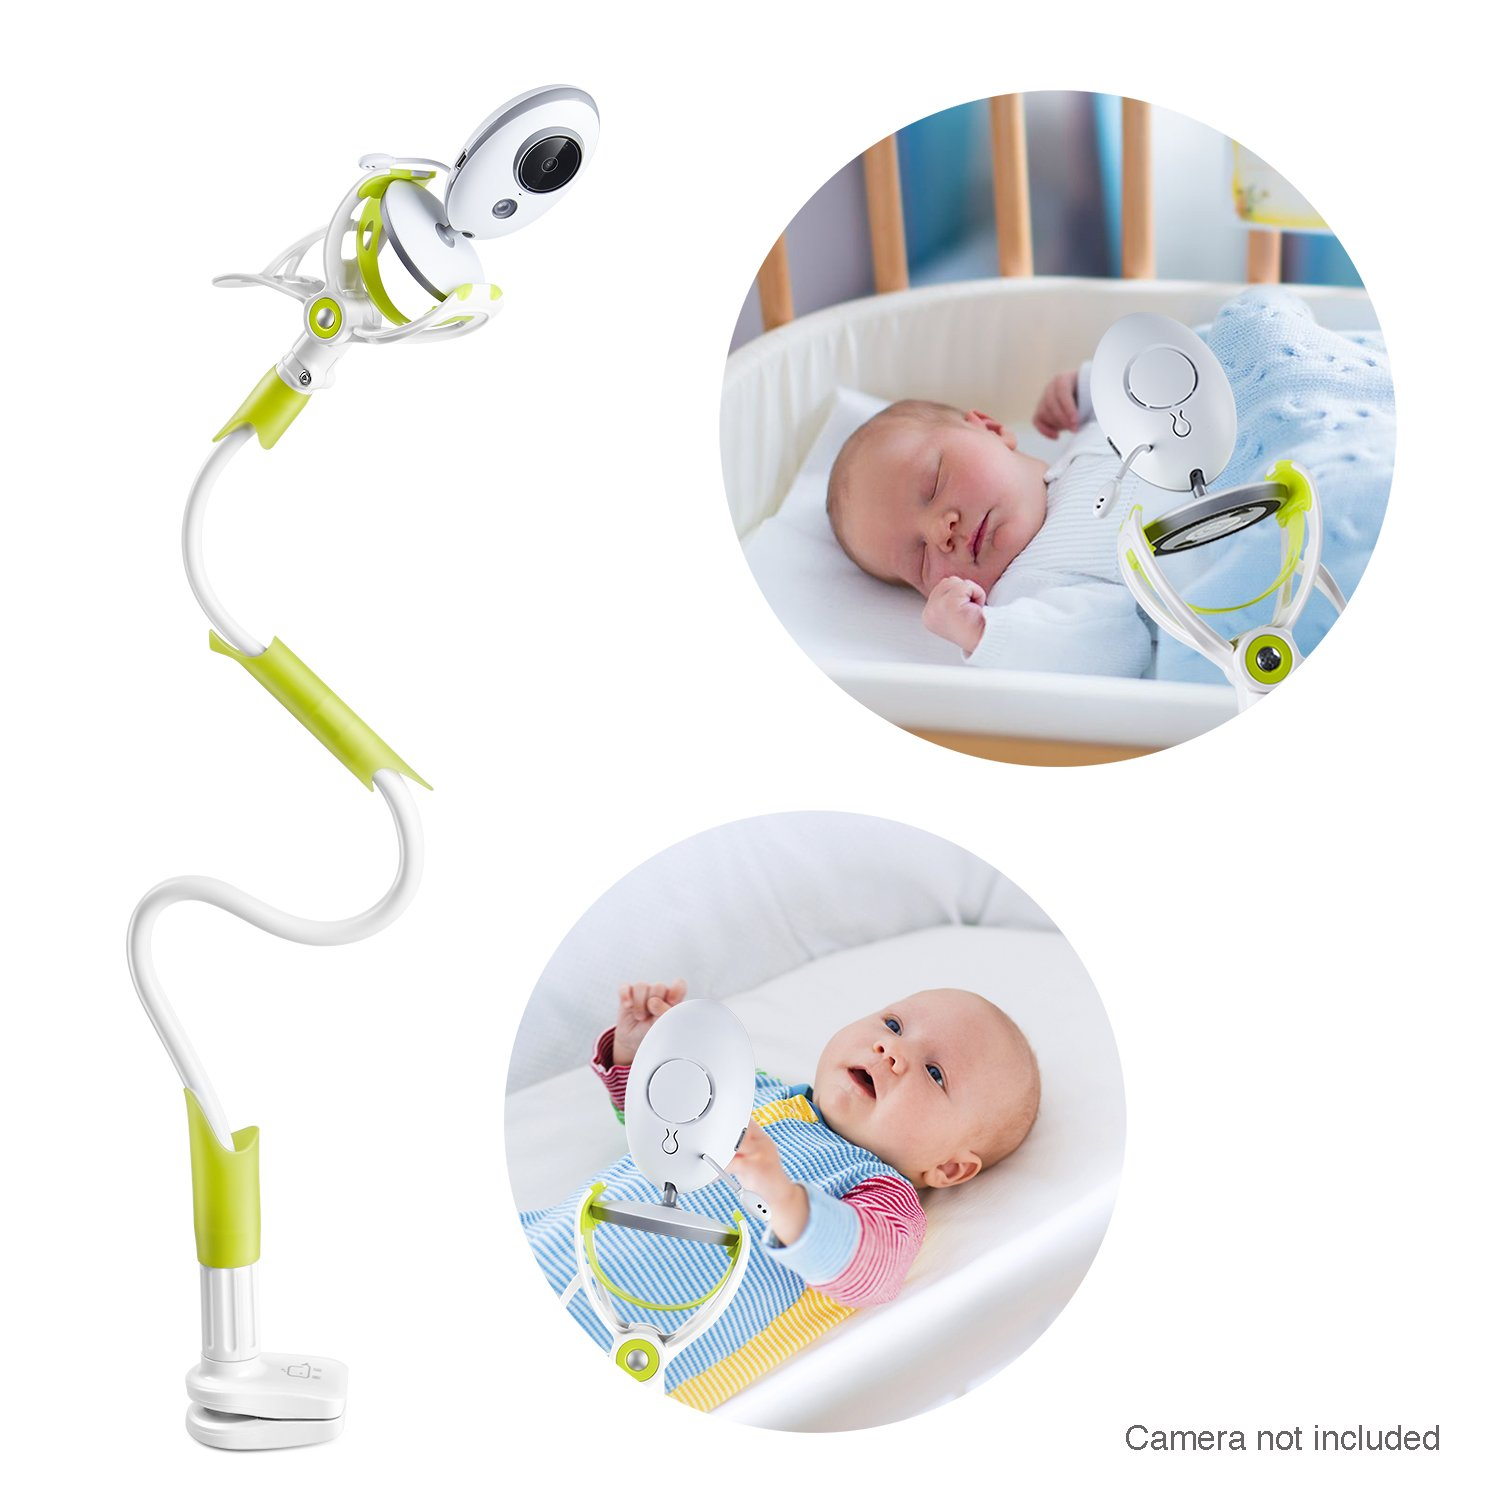 GOLOHO Baby Monitor Holder and Shelf - Compatible with Most Baby Monitors - Easy to Get a Complete Safe View of Your Baby, Green